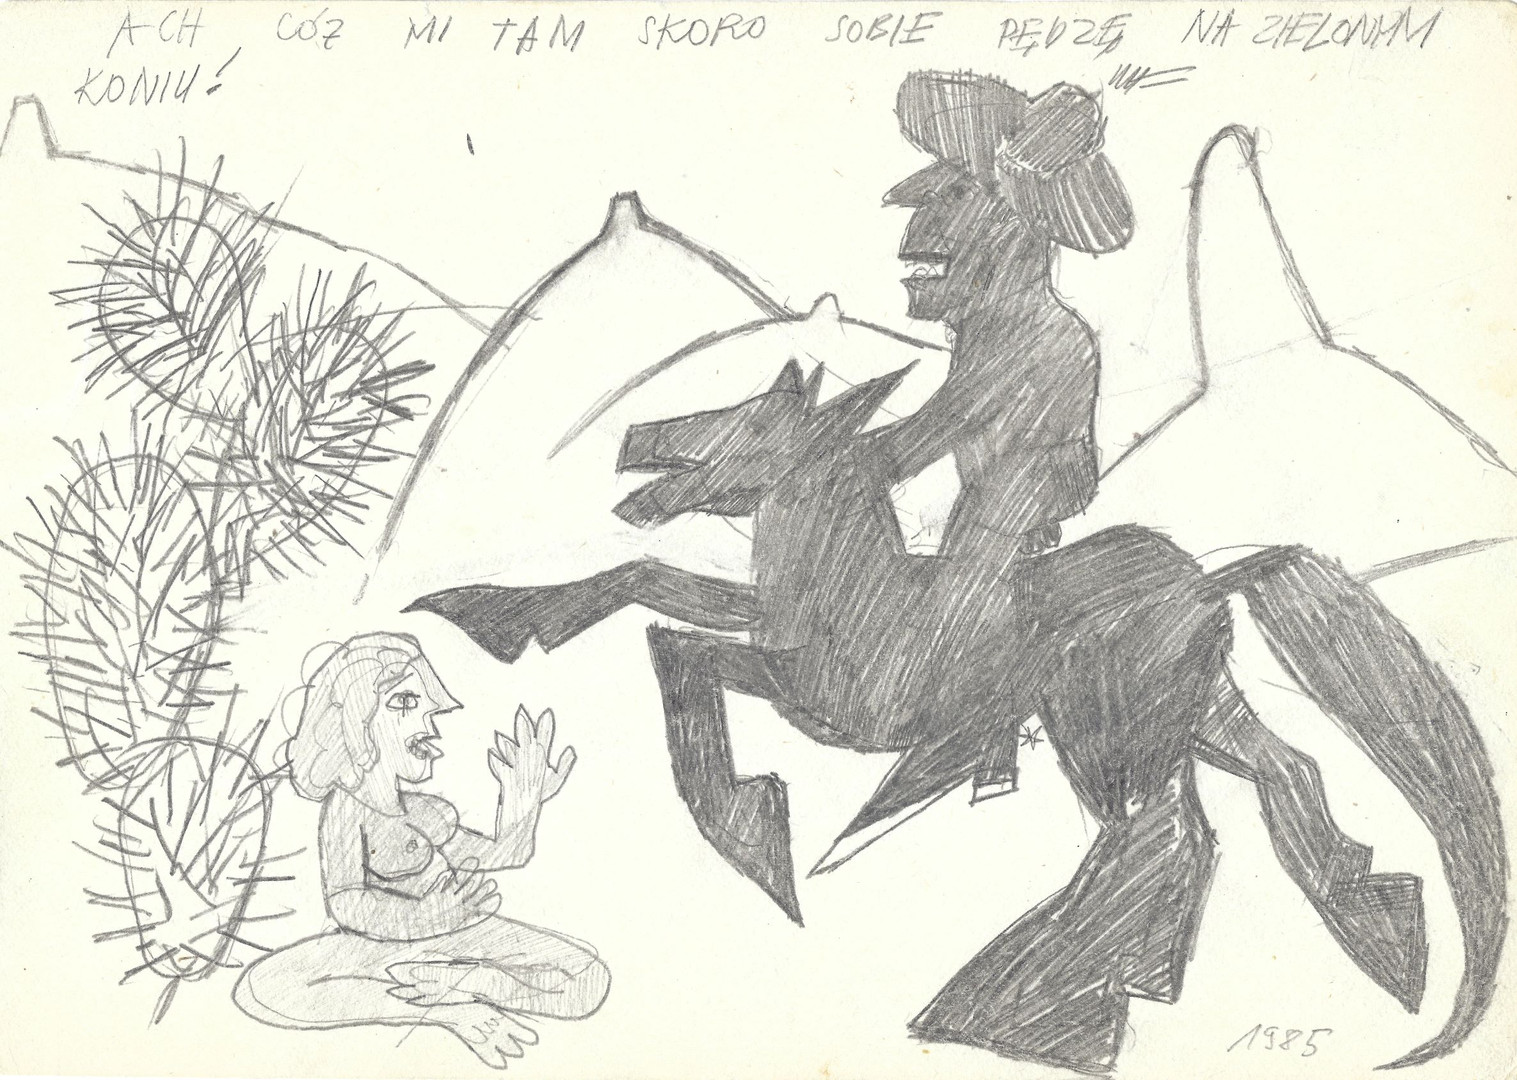 """What the hell, while I'm racing on a green horse"", 1985, pencil on paper, 21 x 29,7 cm"